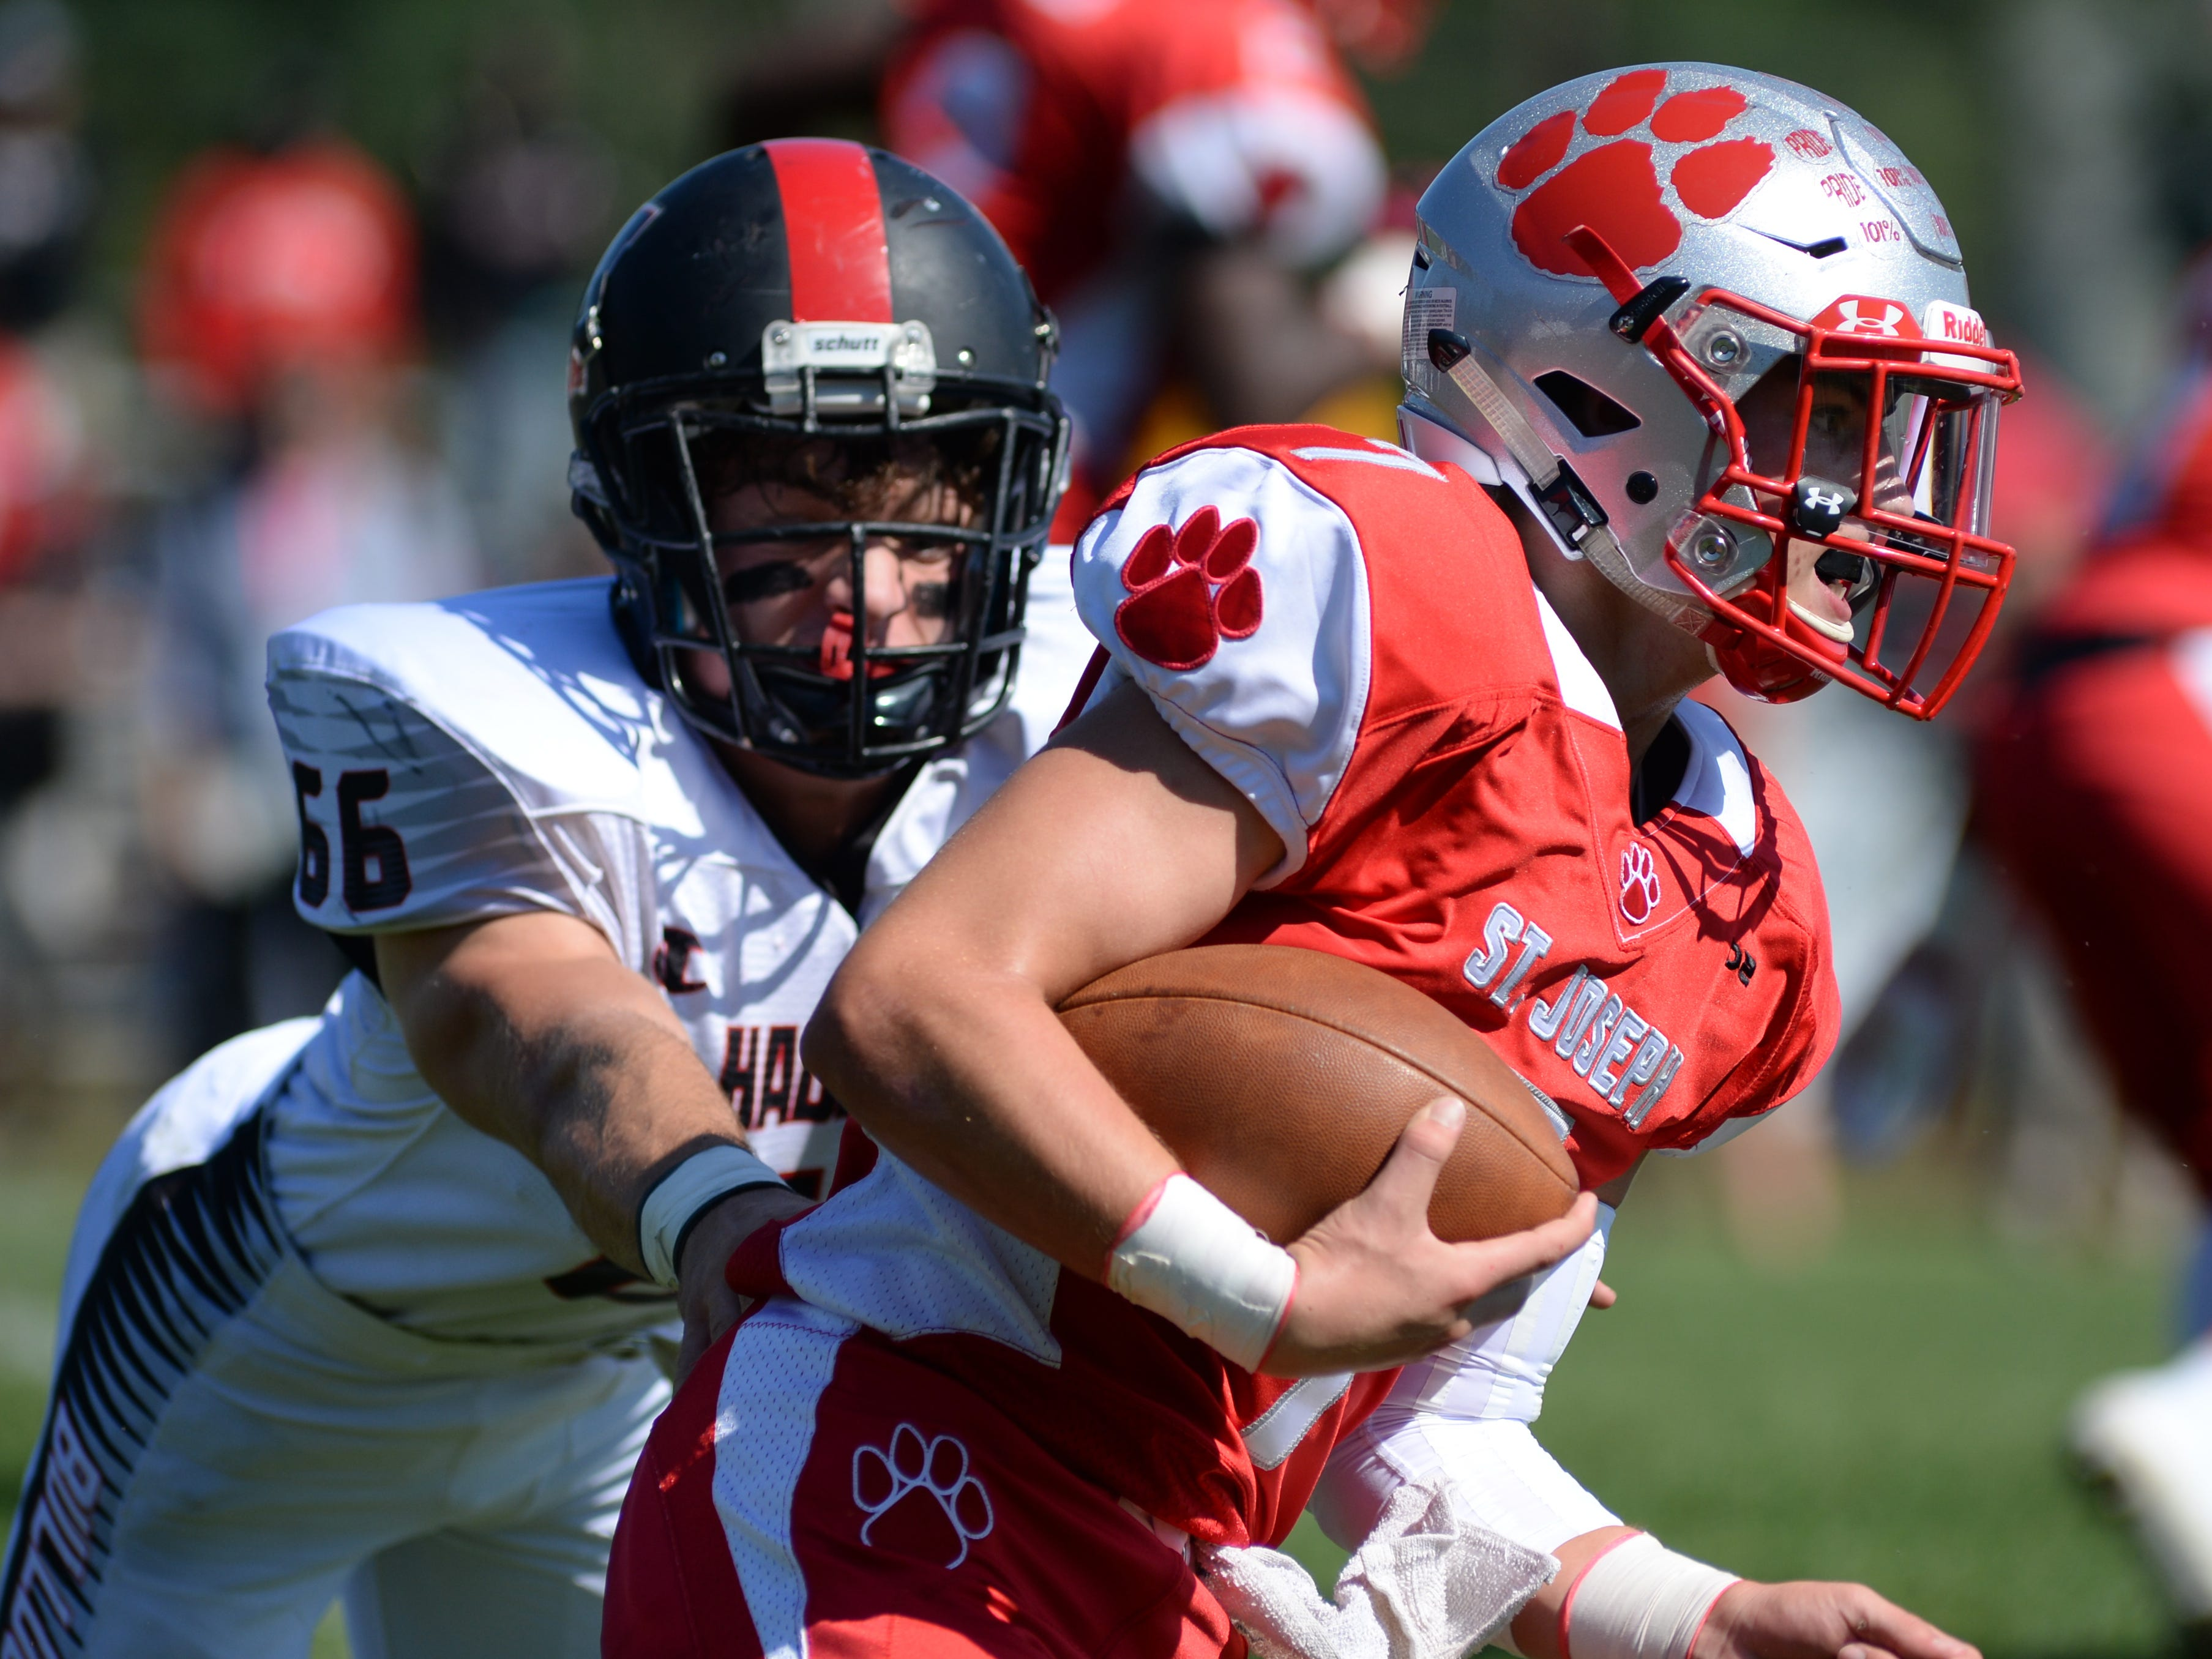 St. Joseph's Jayden Shertel carries the ball during the first half of Saturday's game against Haddonfield, Sept. 29, 2018.